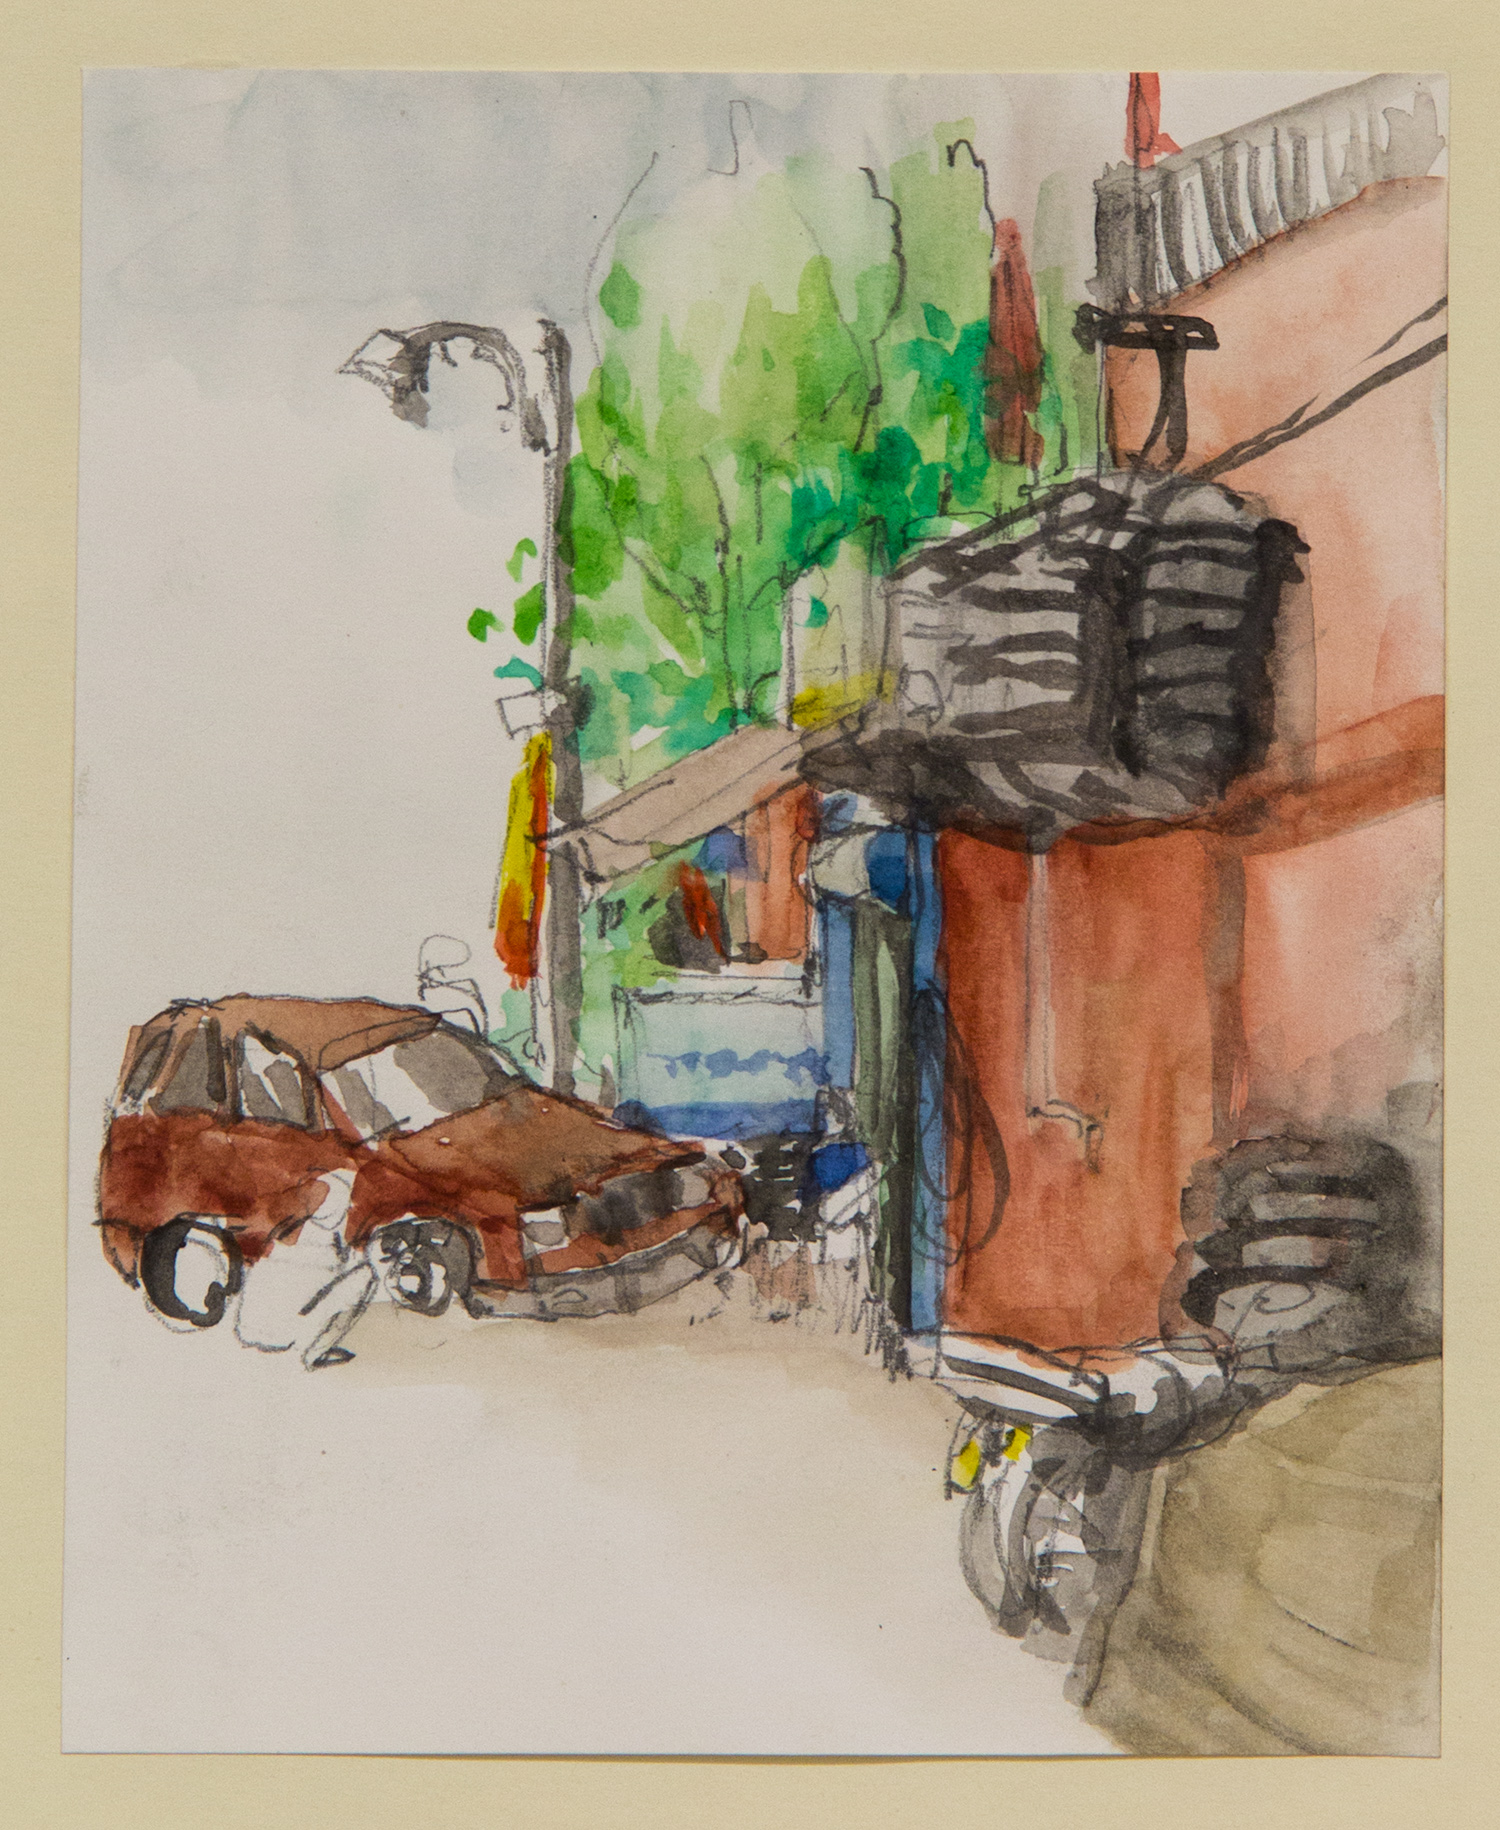 Malvya Nagar tire house; 15 x 22 cm; watercolour, ink and coloured pencil on Paper; 2016